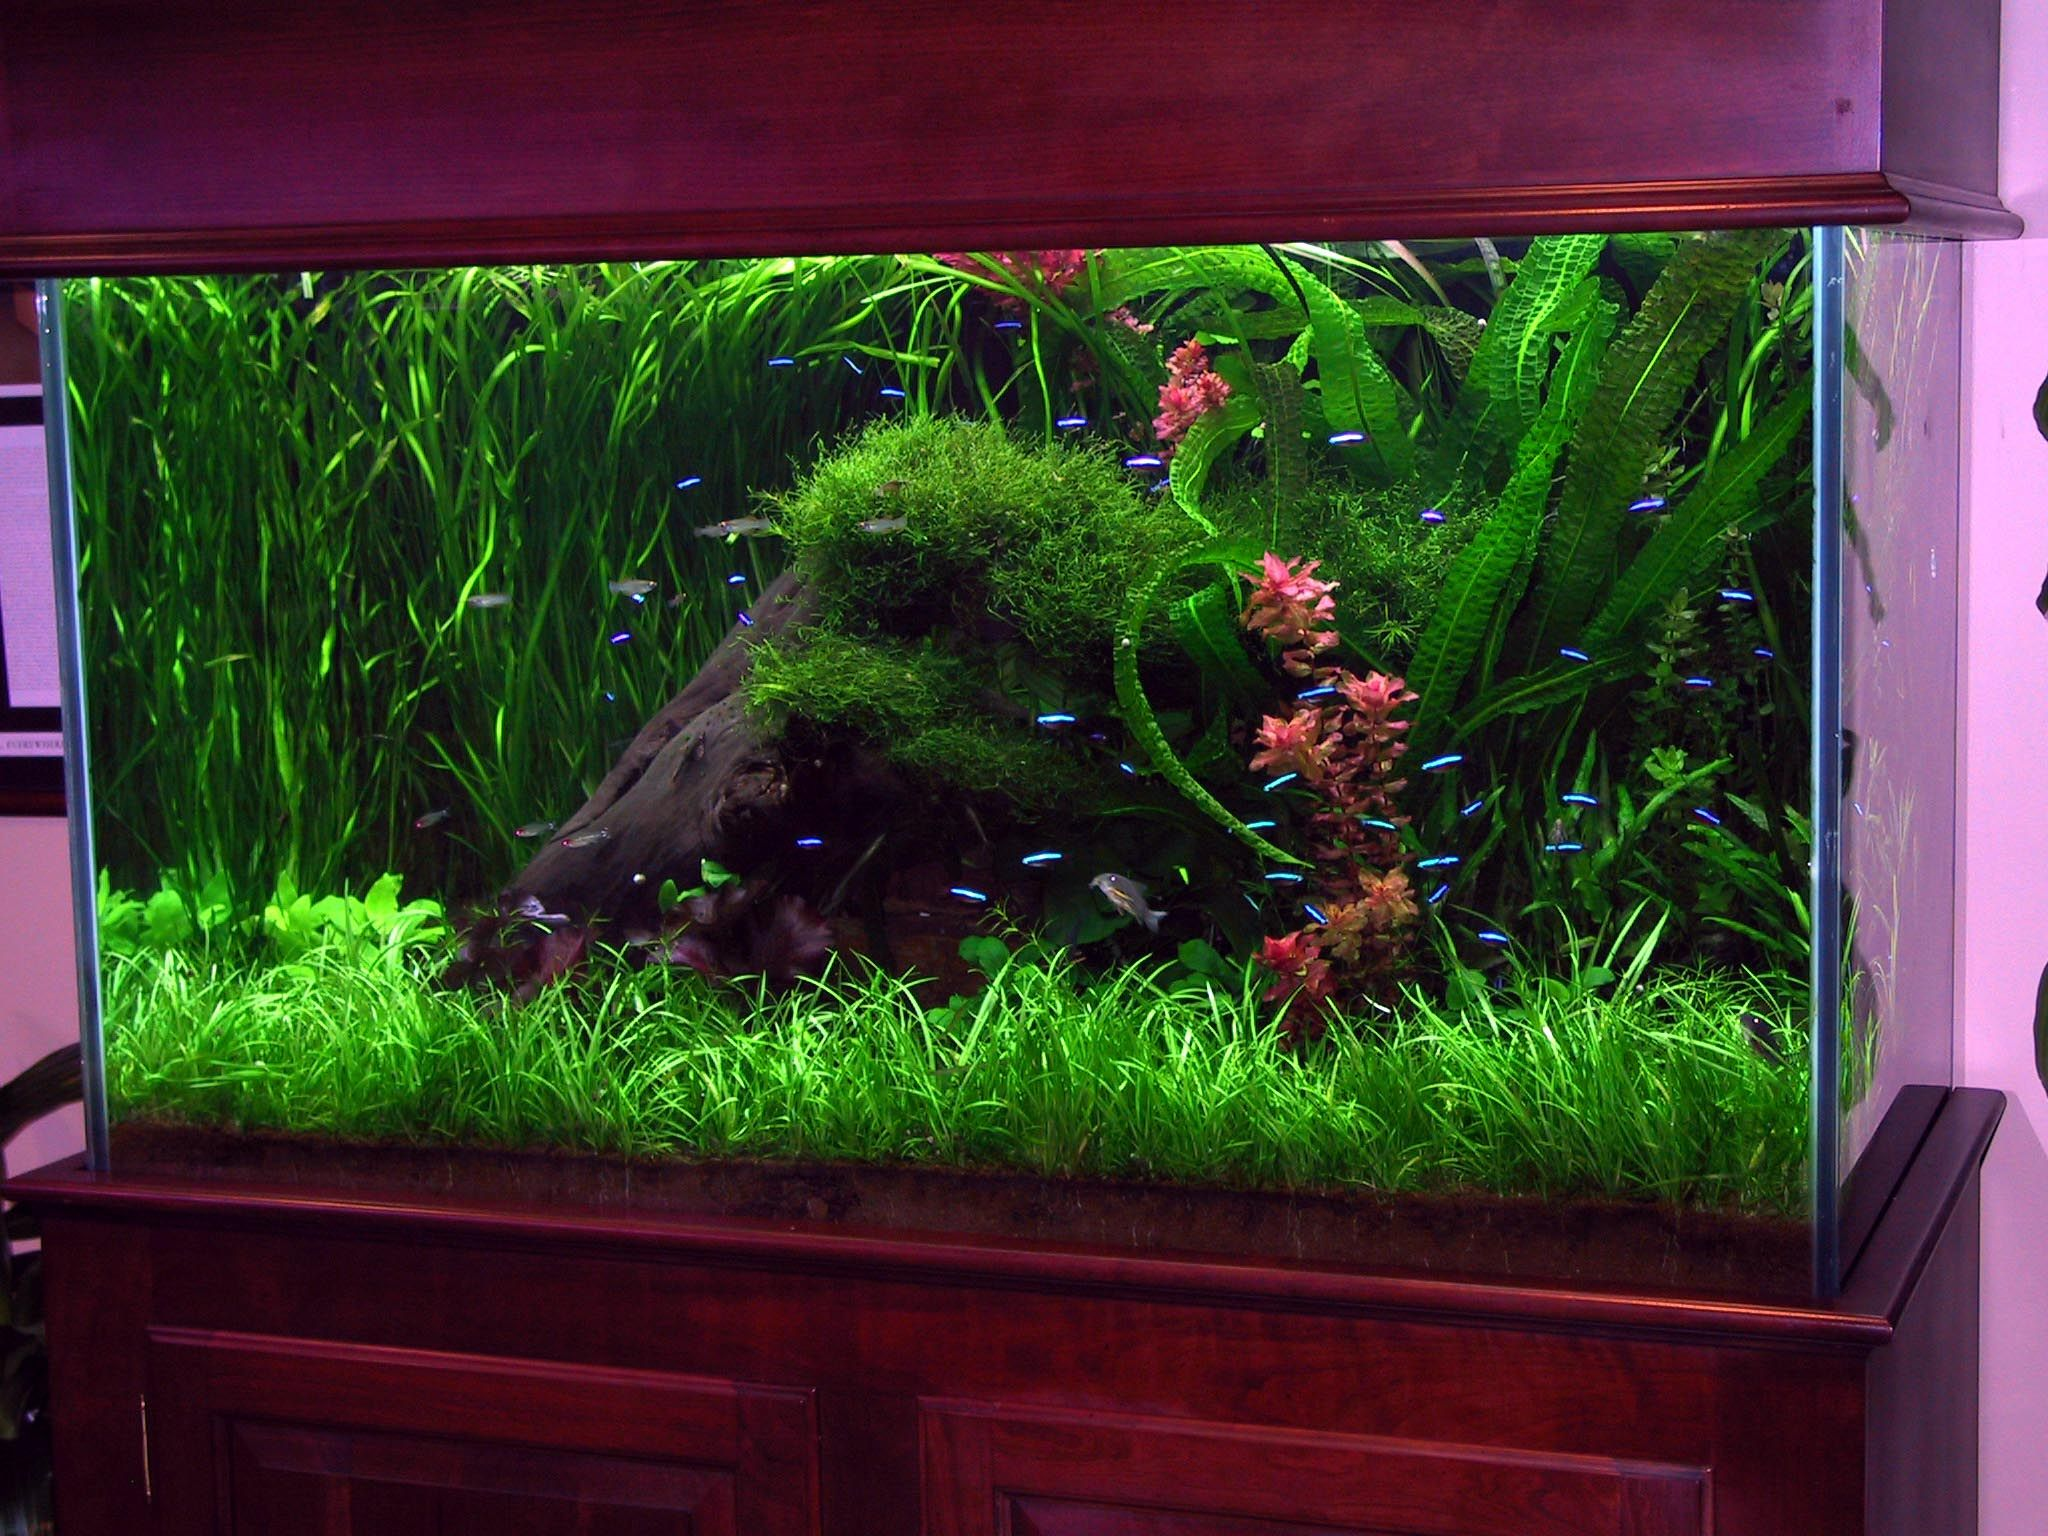 Fish aquarium price in pakistan - Interior Designs Ideas Corner Fish Tanks Aquariums Acrylic Tank Design Filter Gravel Custom Large Start Background